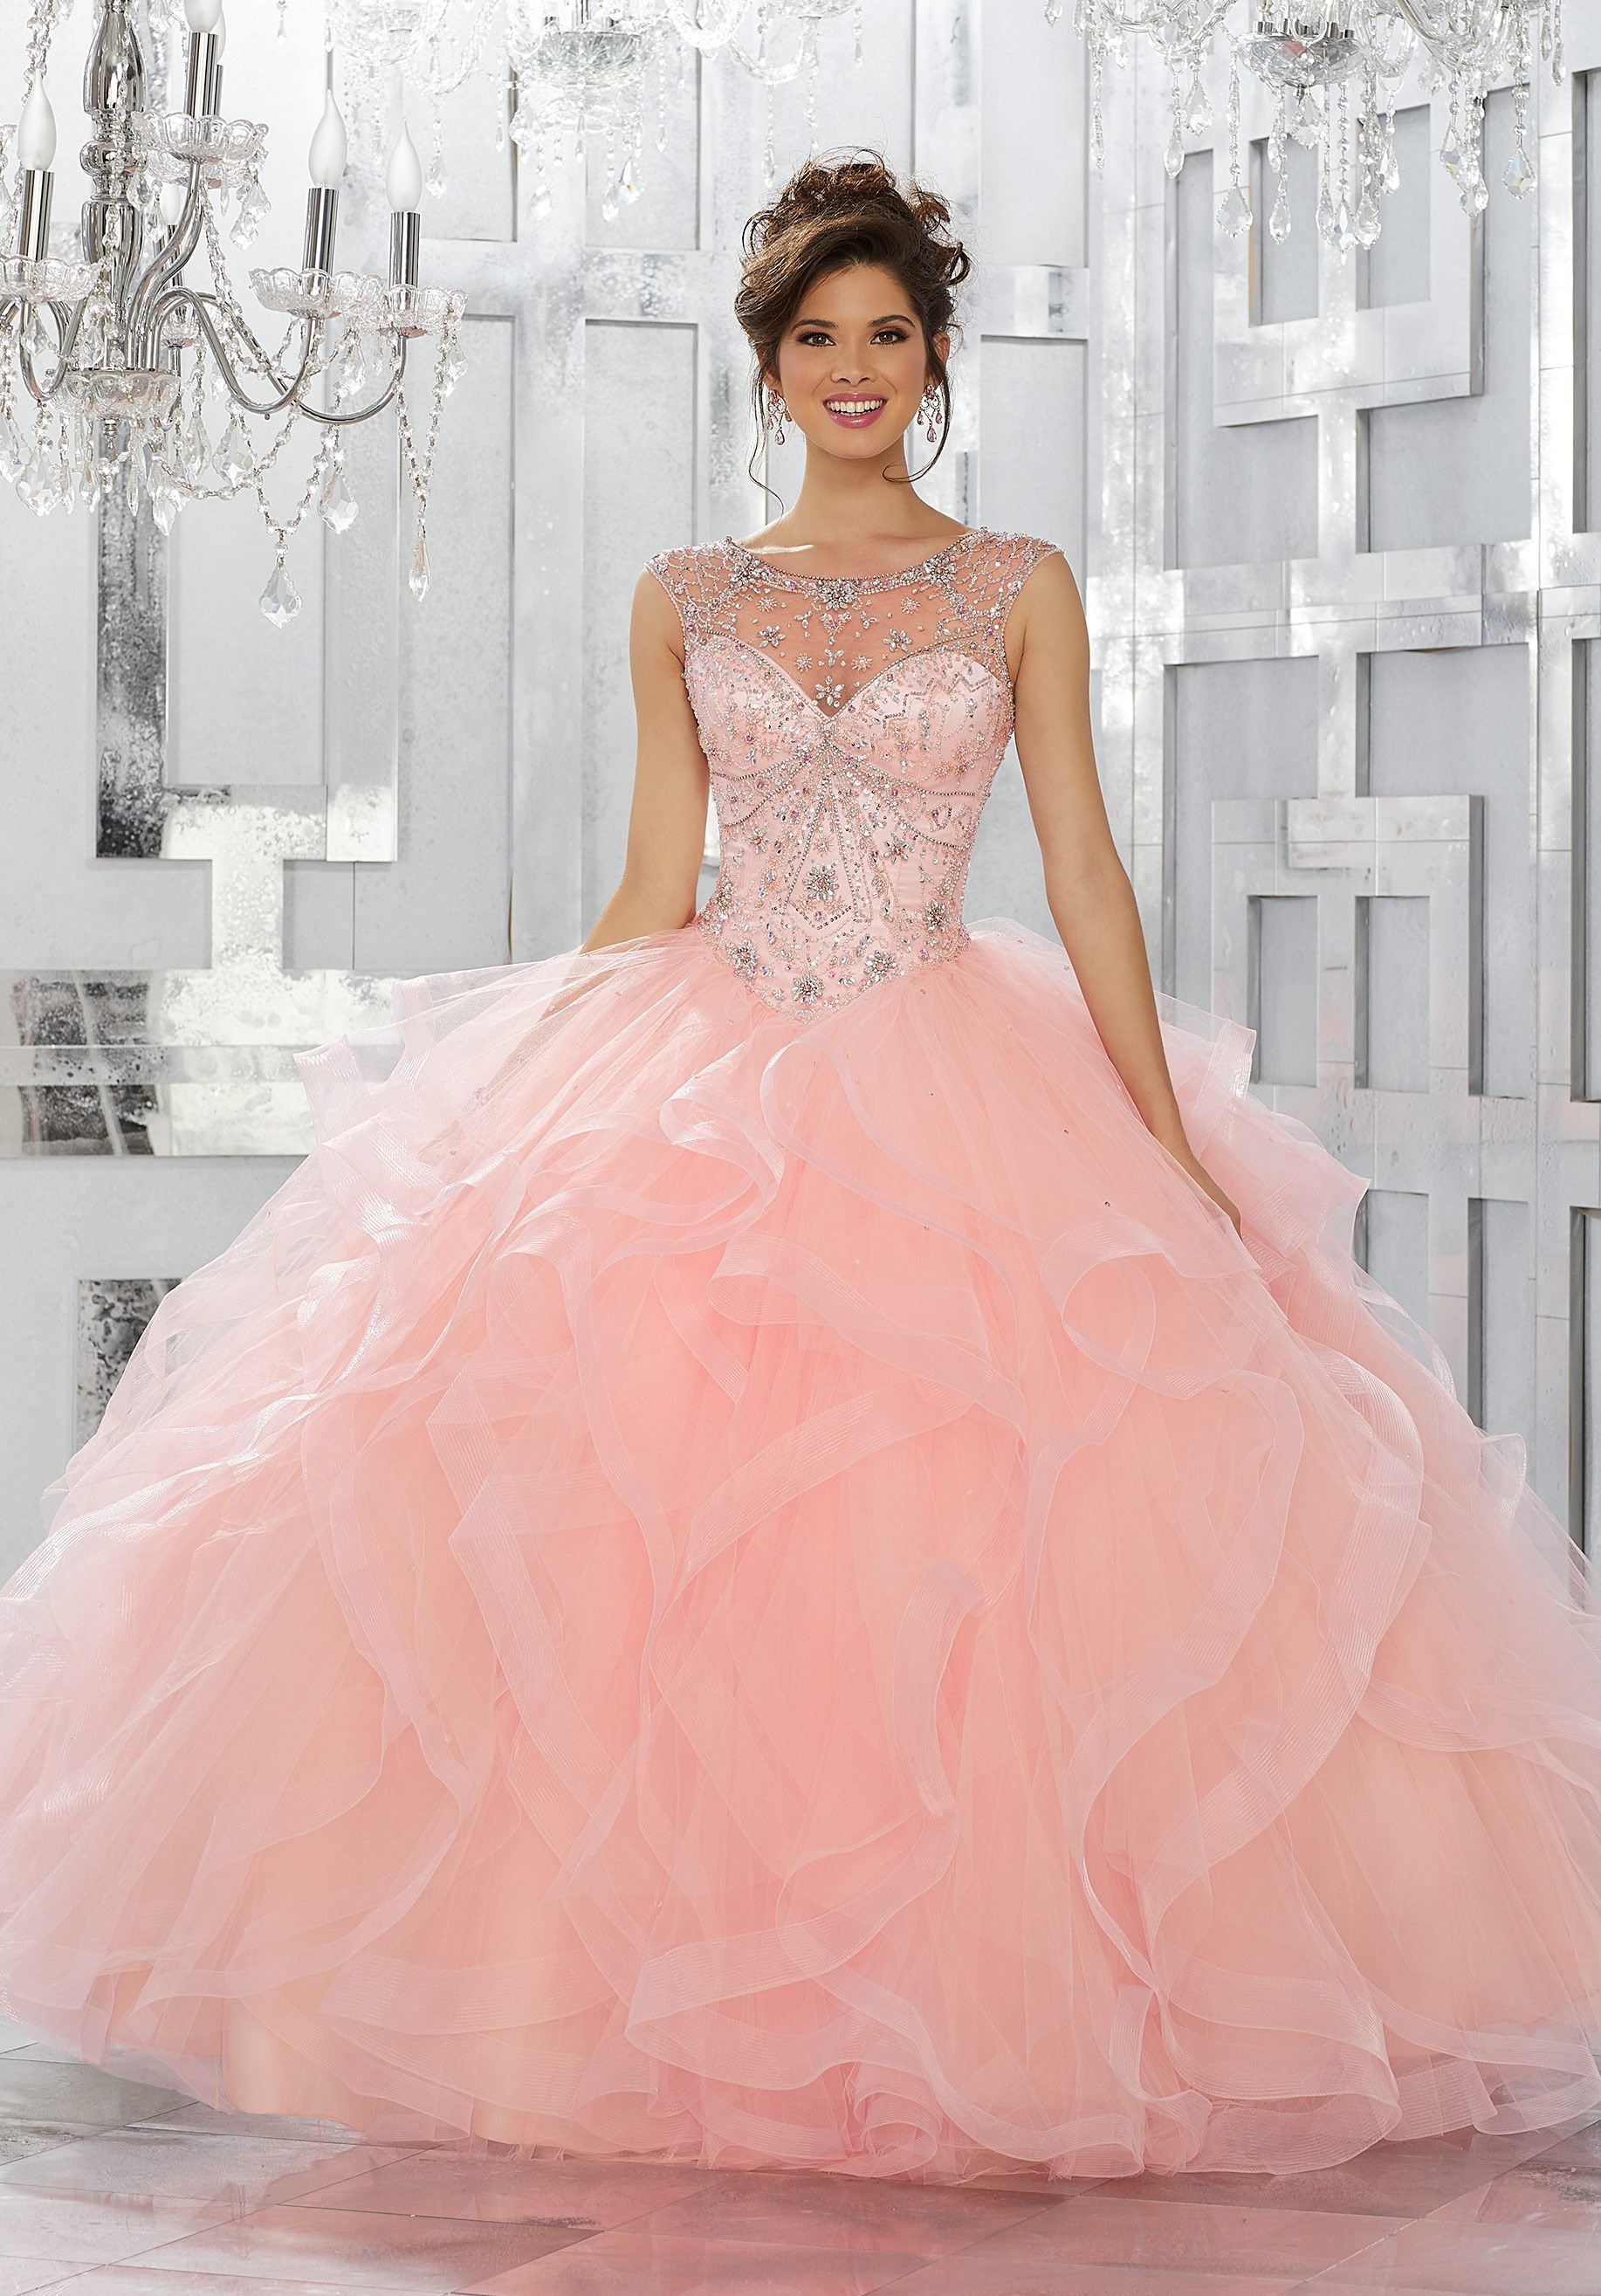 Beaded Illusion Quinceanera Dress by Mori Lee Vizcaya 89141